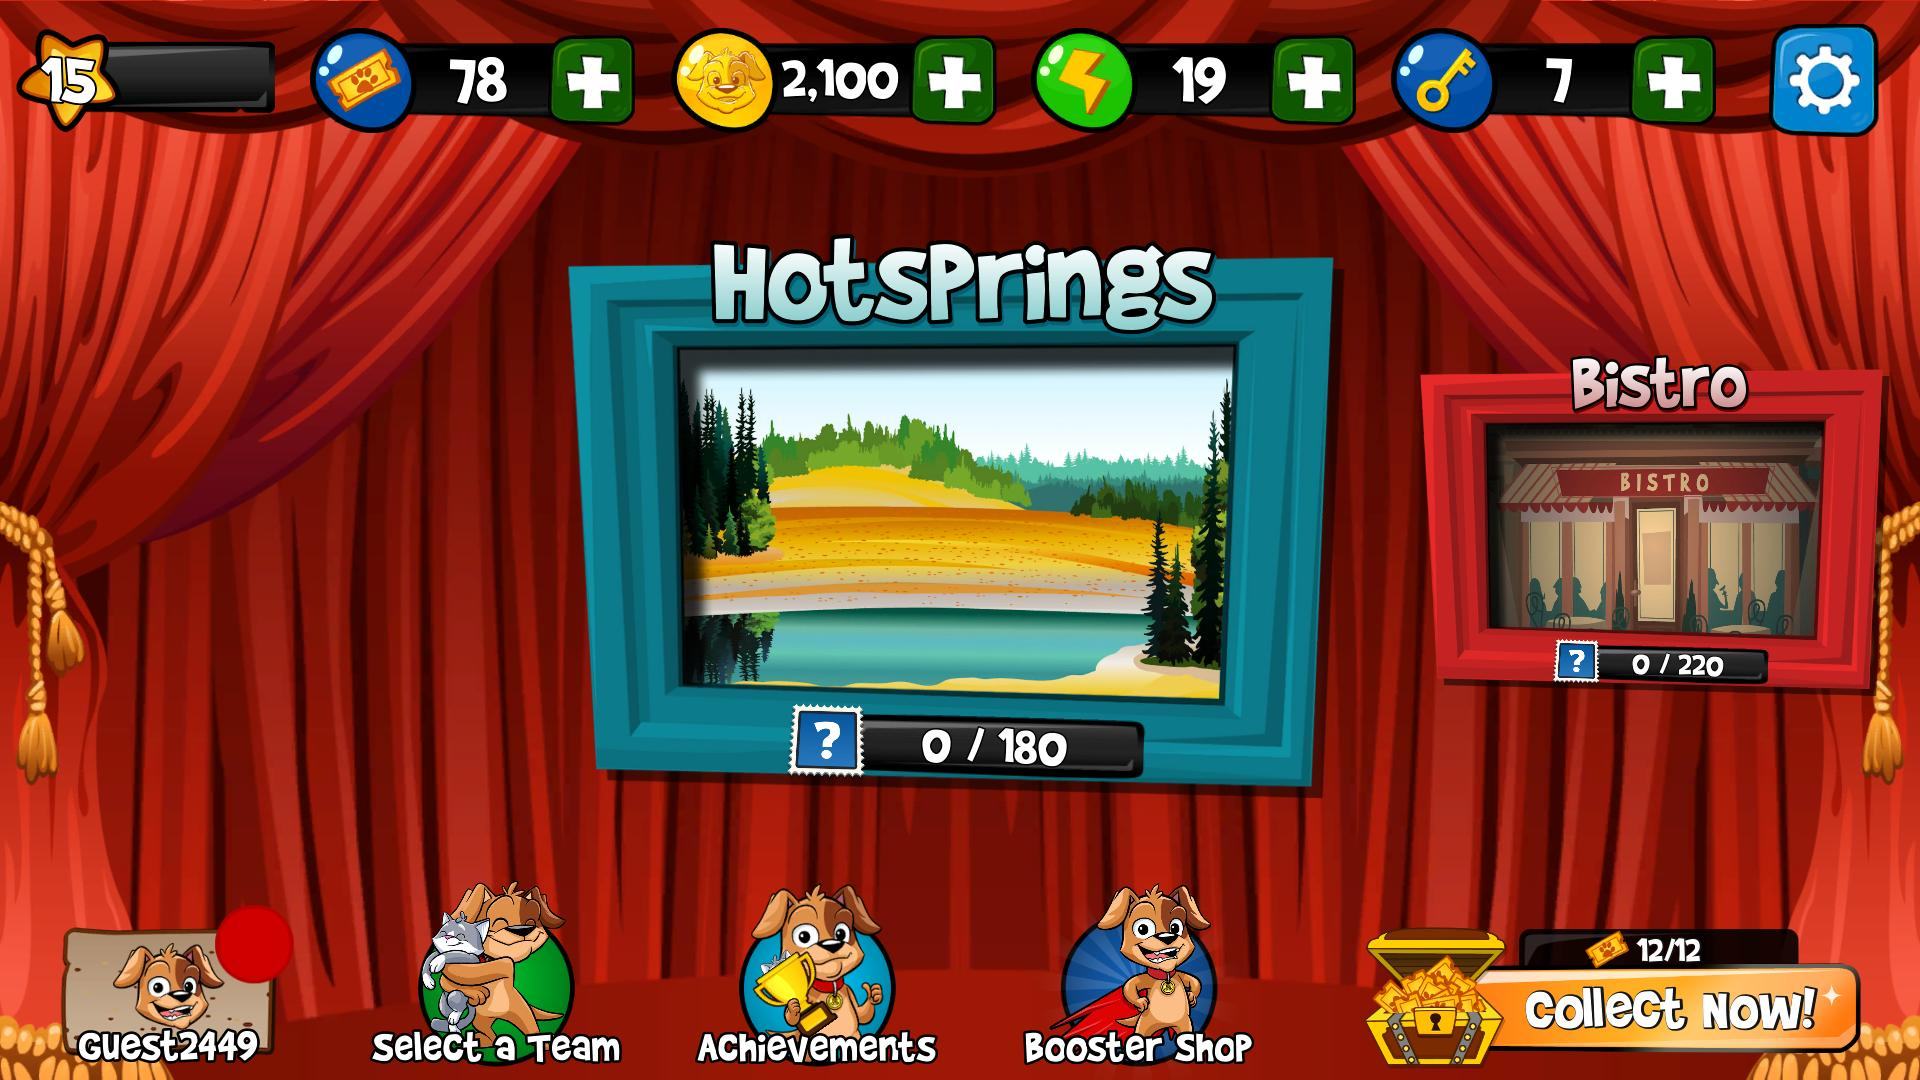 Bingo Abradoodle - Bingo Games Free to Play! 3.0.02 Screenshot 14